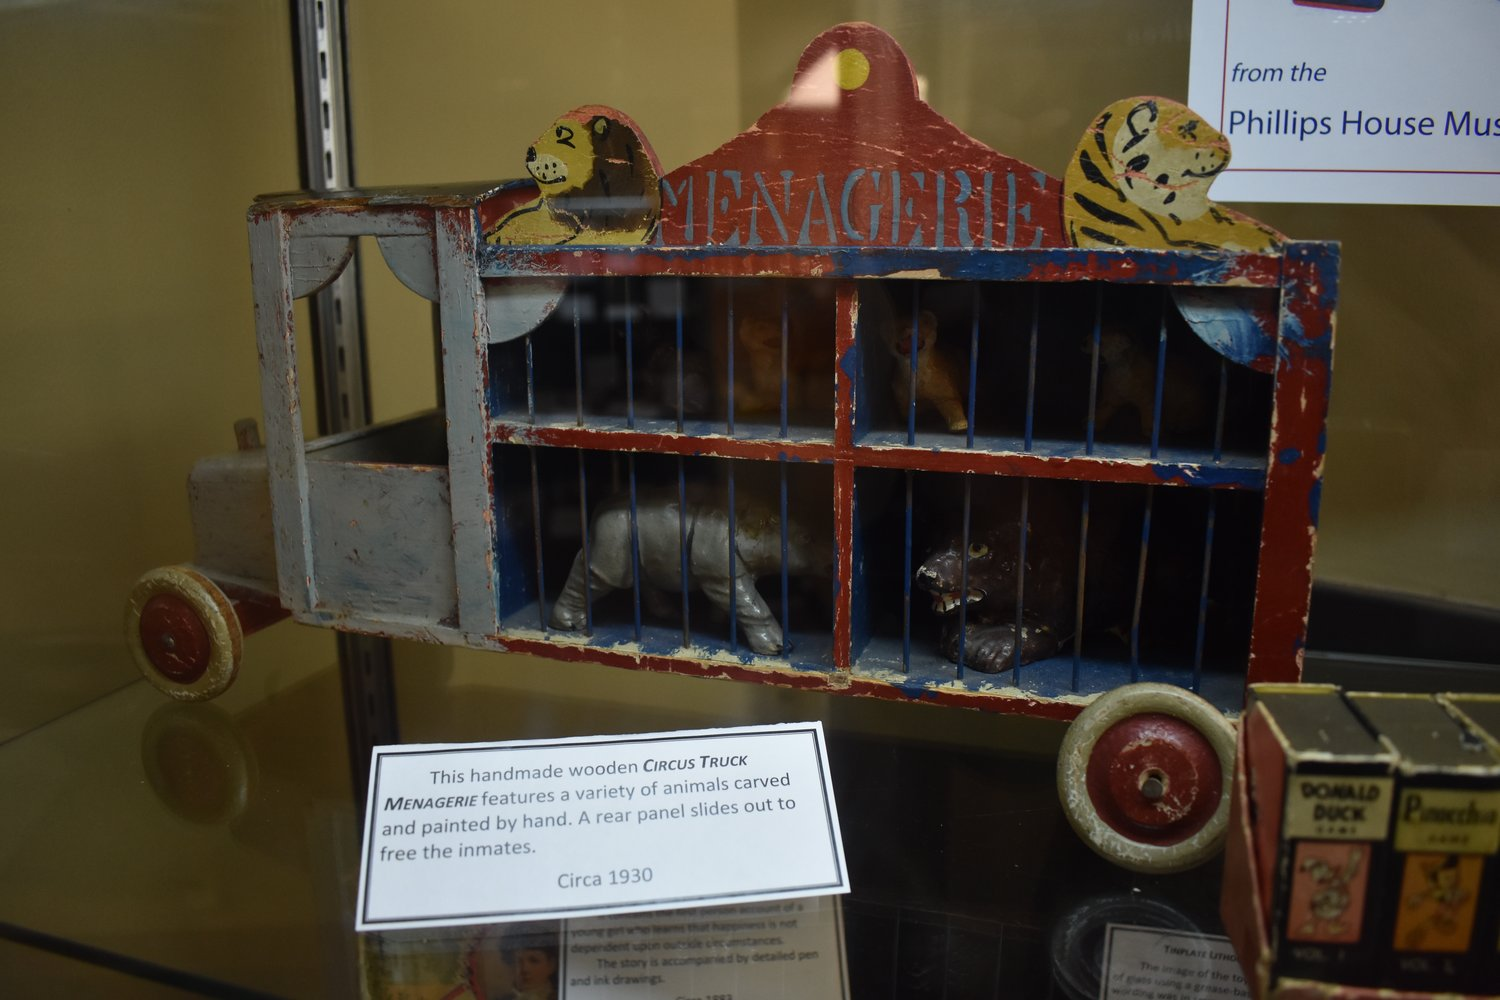 Among the vintage toys are a wooden circus truck holds animals carved and painted by hand.